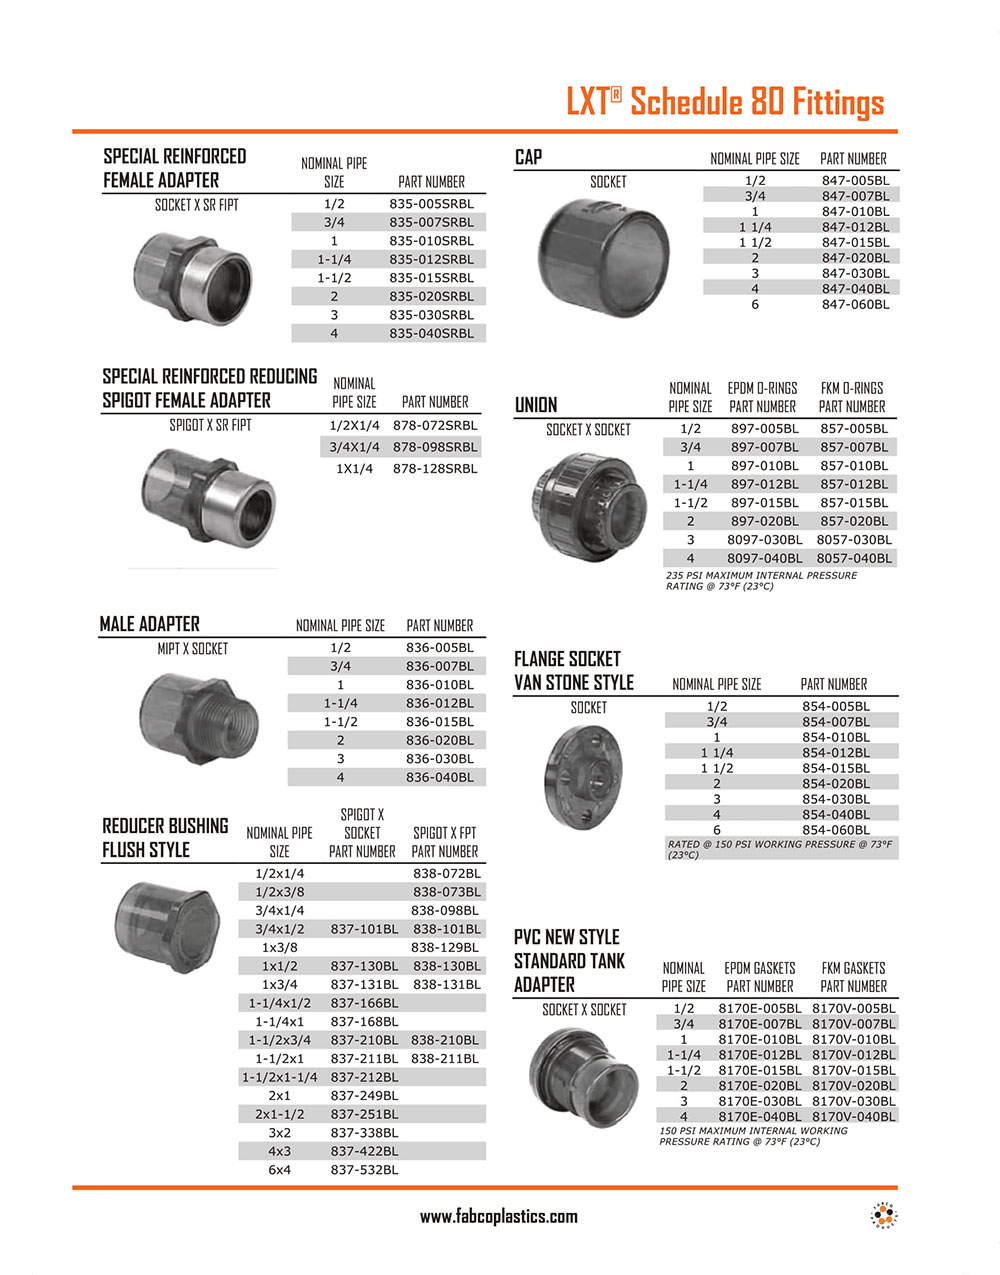 LXT Schedule 80 Piping Systems